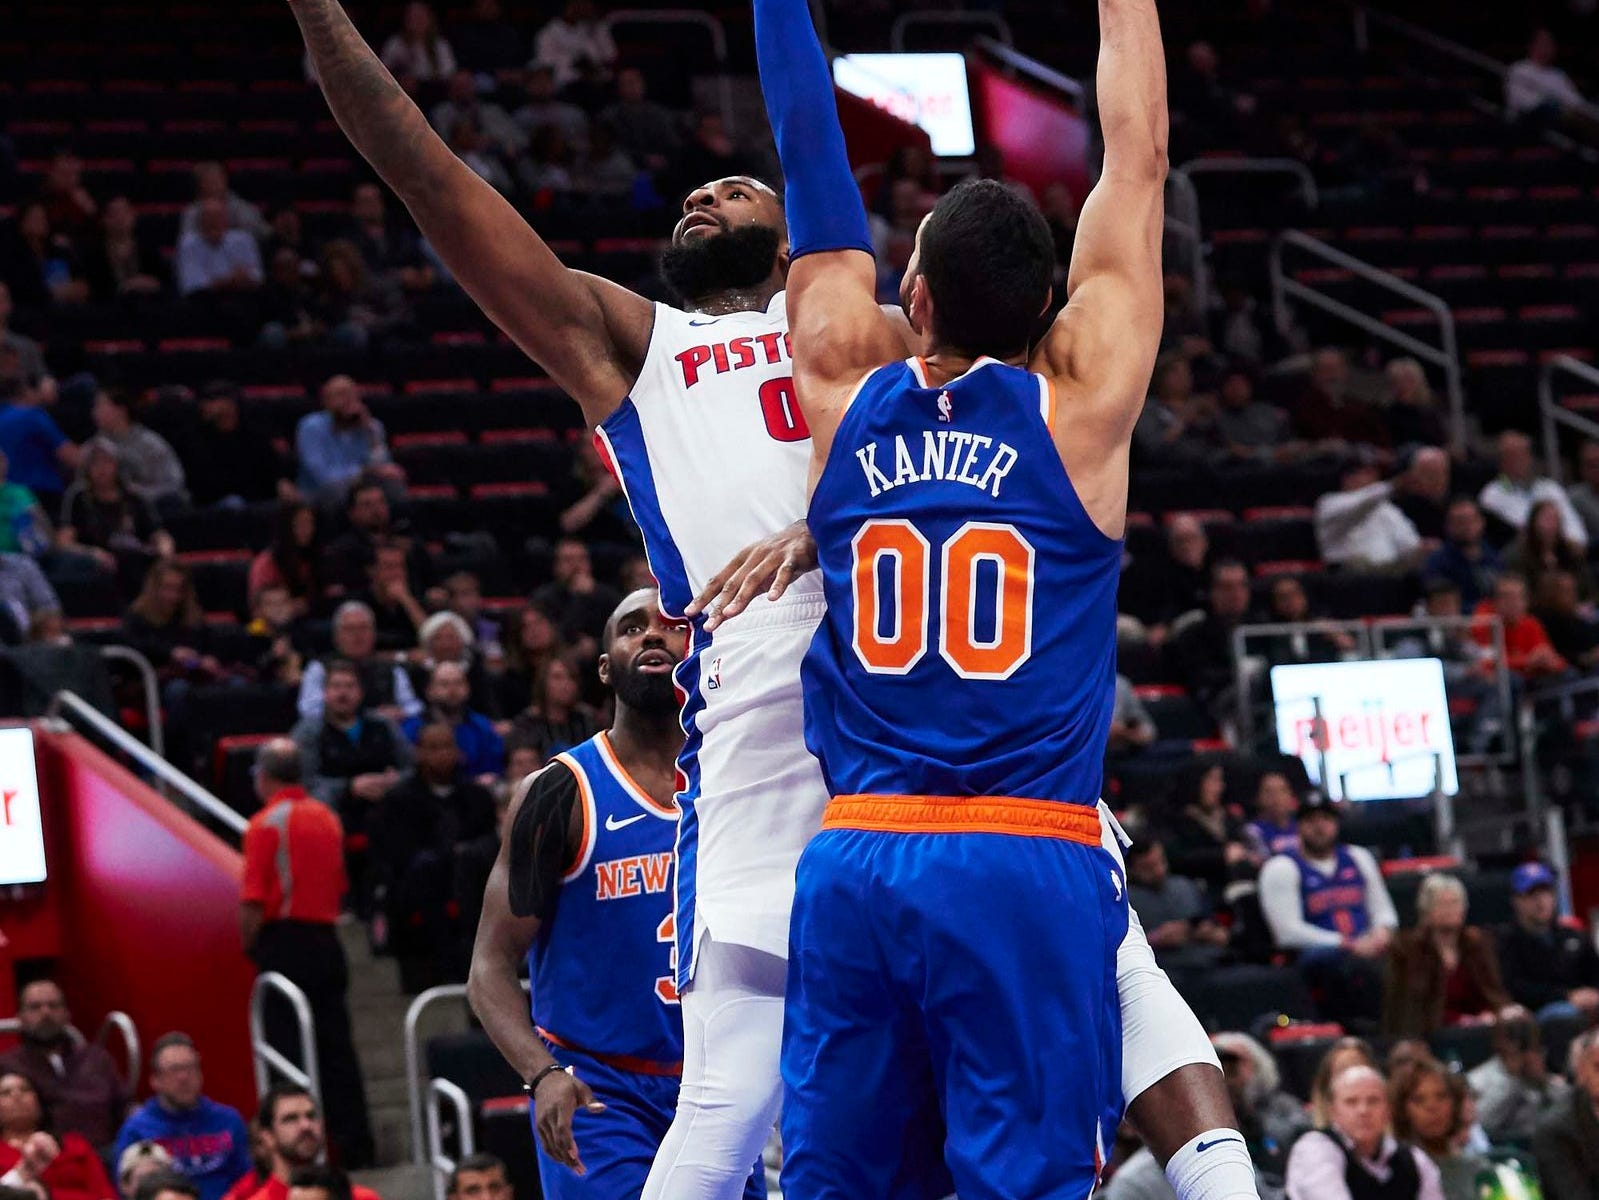 Detroit Pistons center Andre Drummond (0) shoots on New York Knicks center Enes Kanter (00) in the first half at Little Caesars Arena.